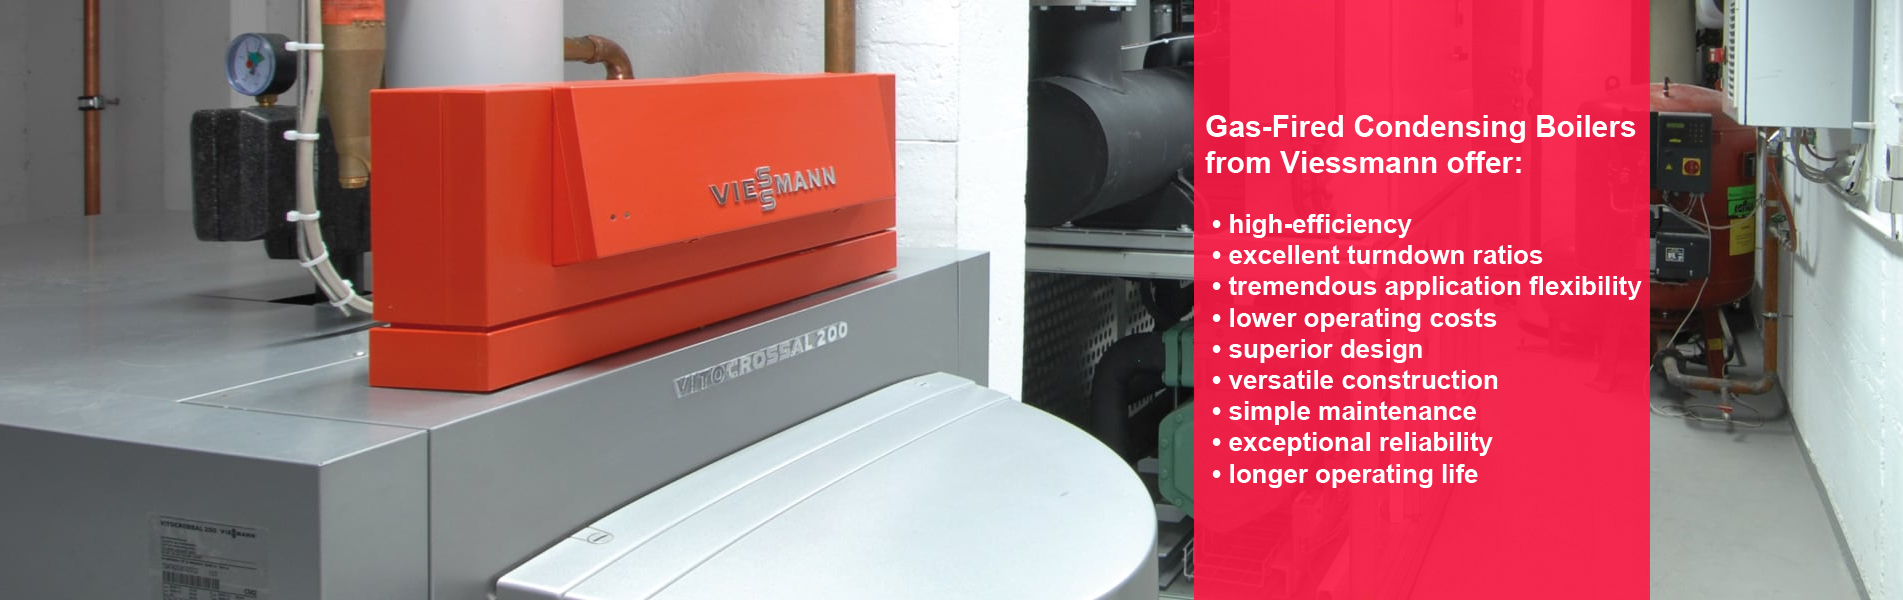 Viessmann Boiler Advantages